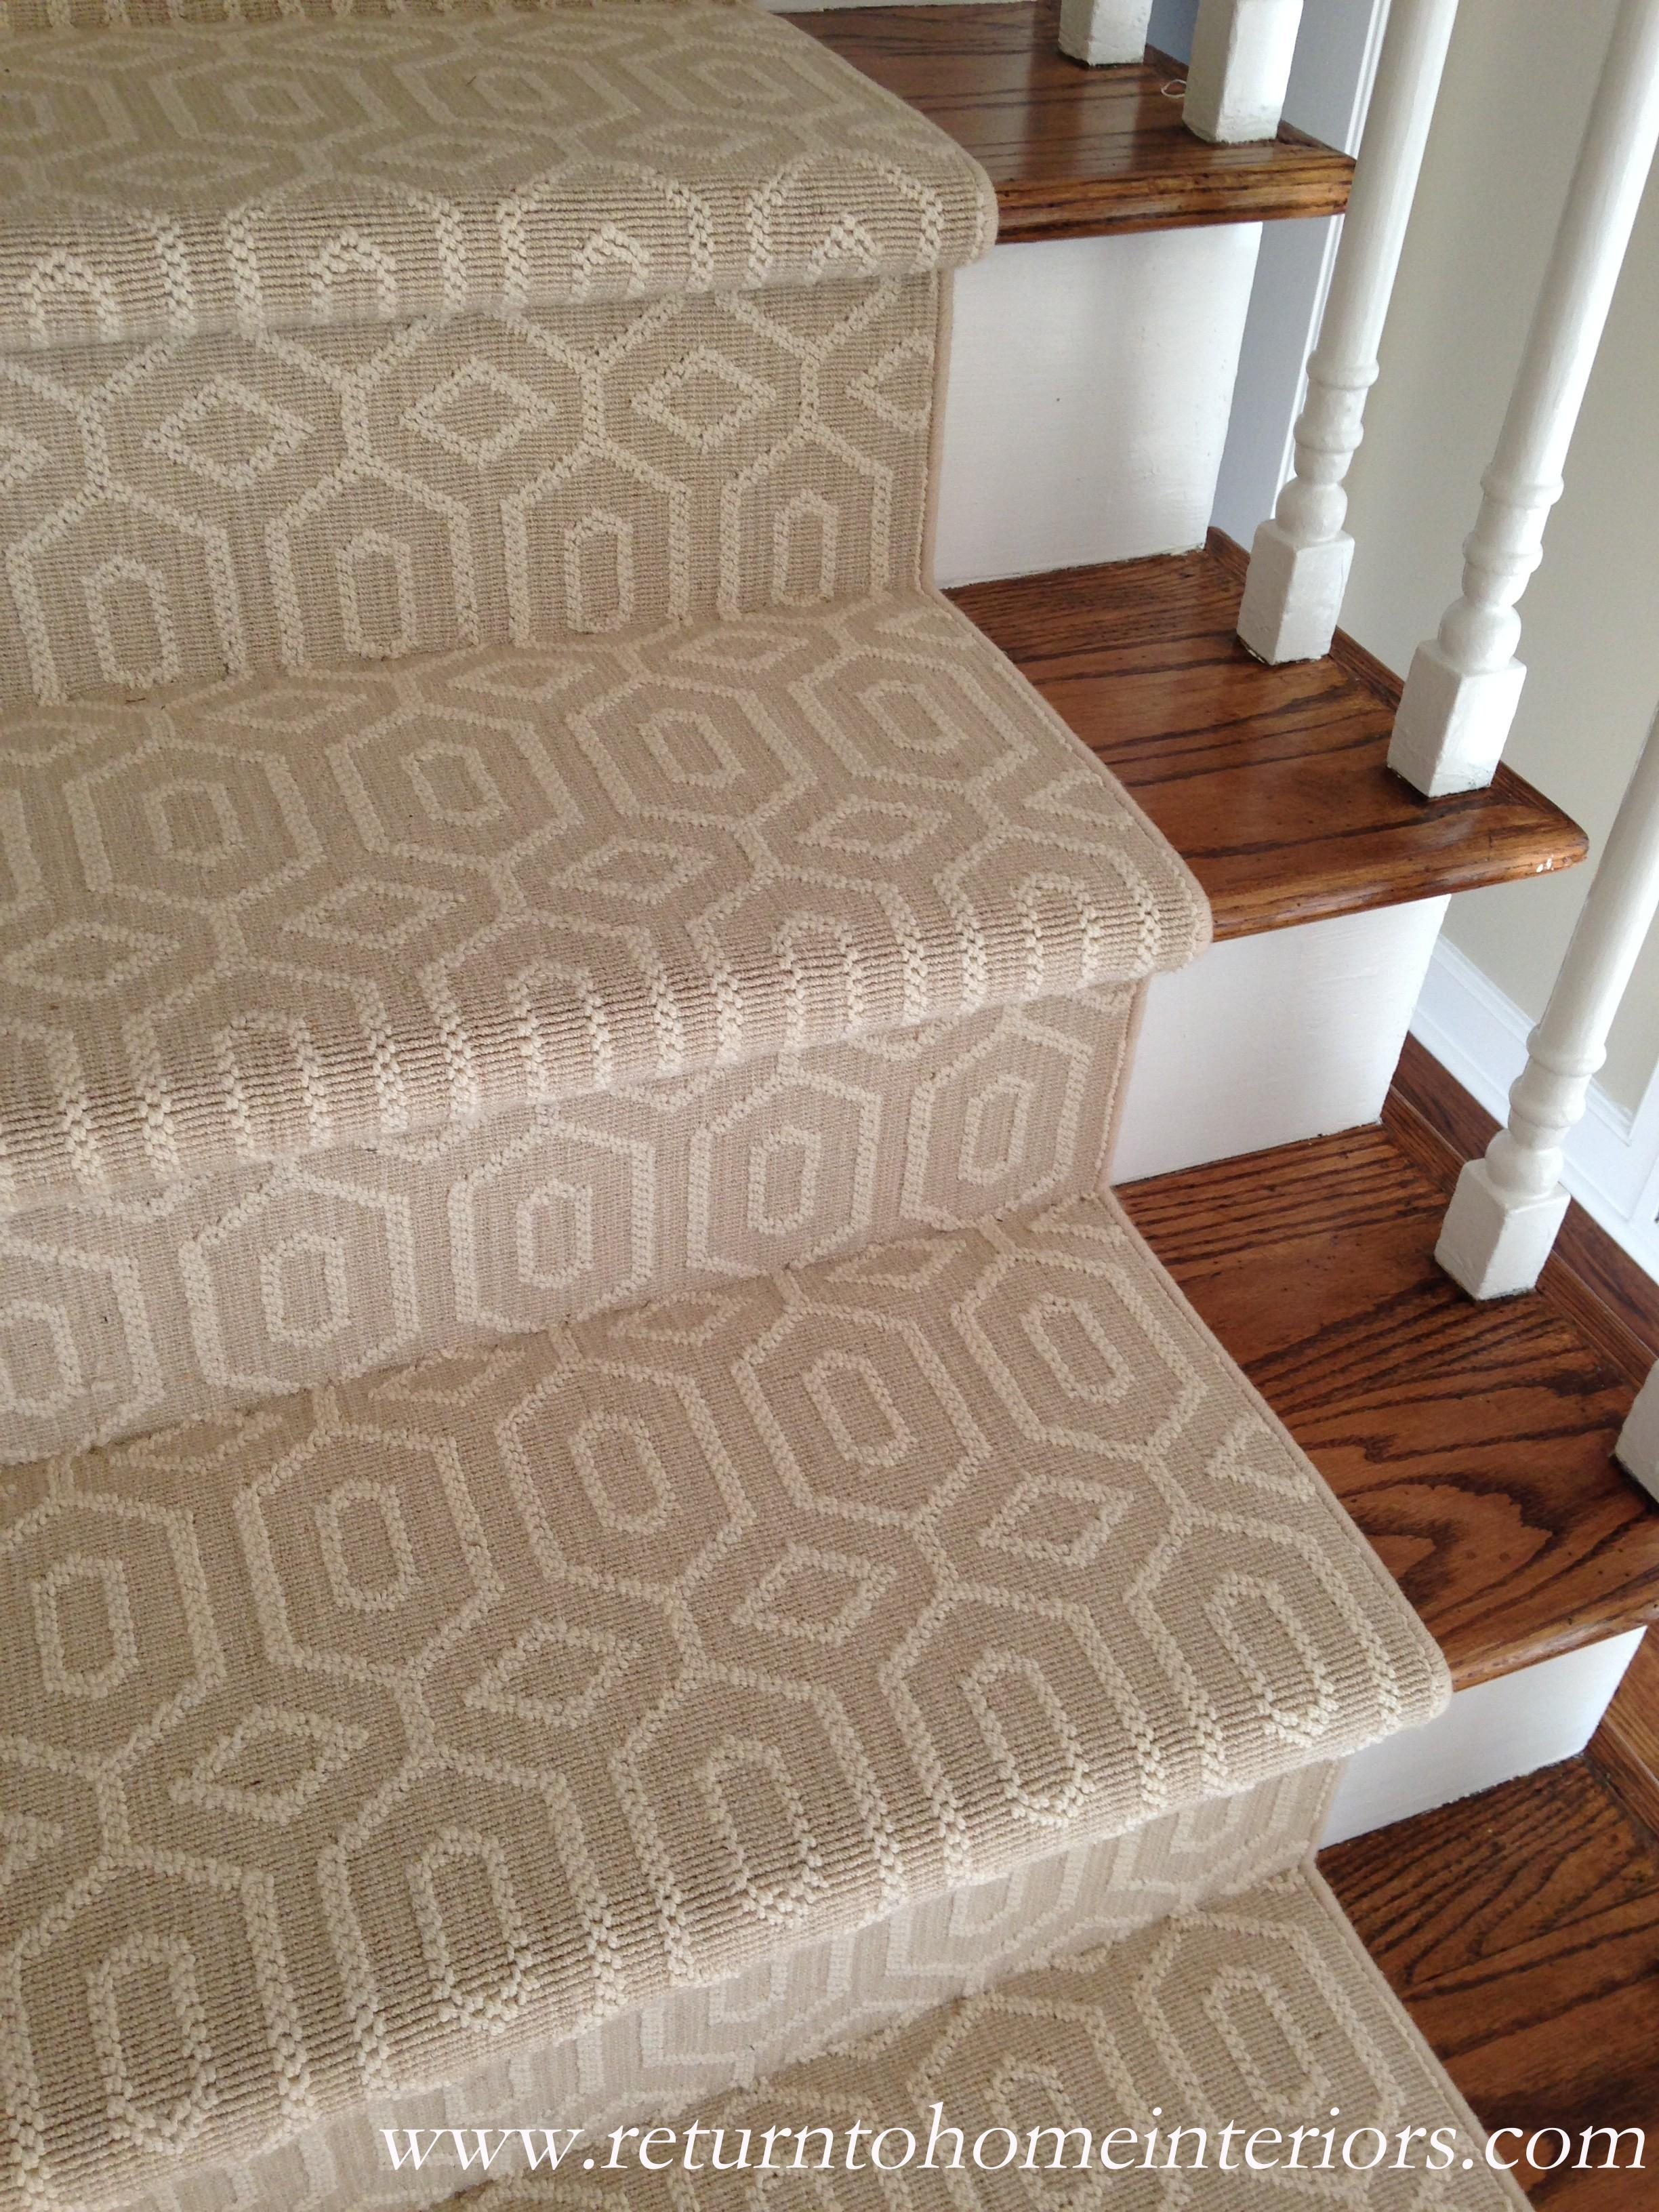 Choosing A Stair Runner Some Inspiration And Lessons Learned | Roll Runners For Stairs | Flooring | Carpet Stair Treads | Canyon Kazmir | Persian Garden | Area Rugs